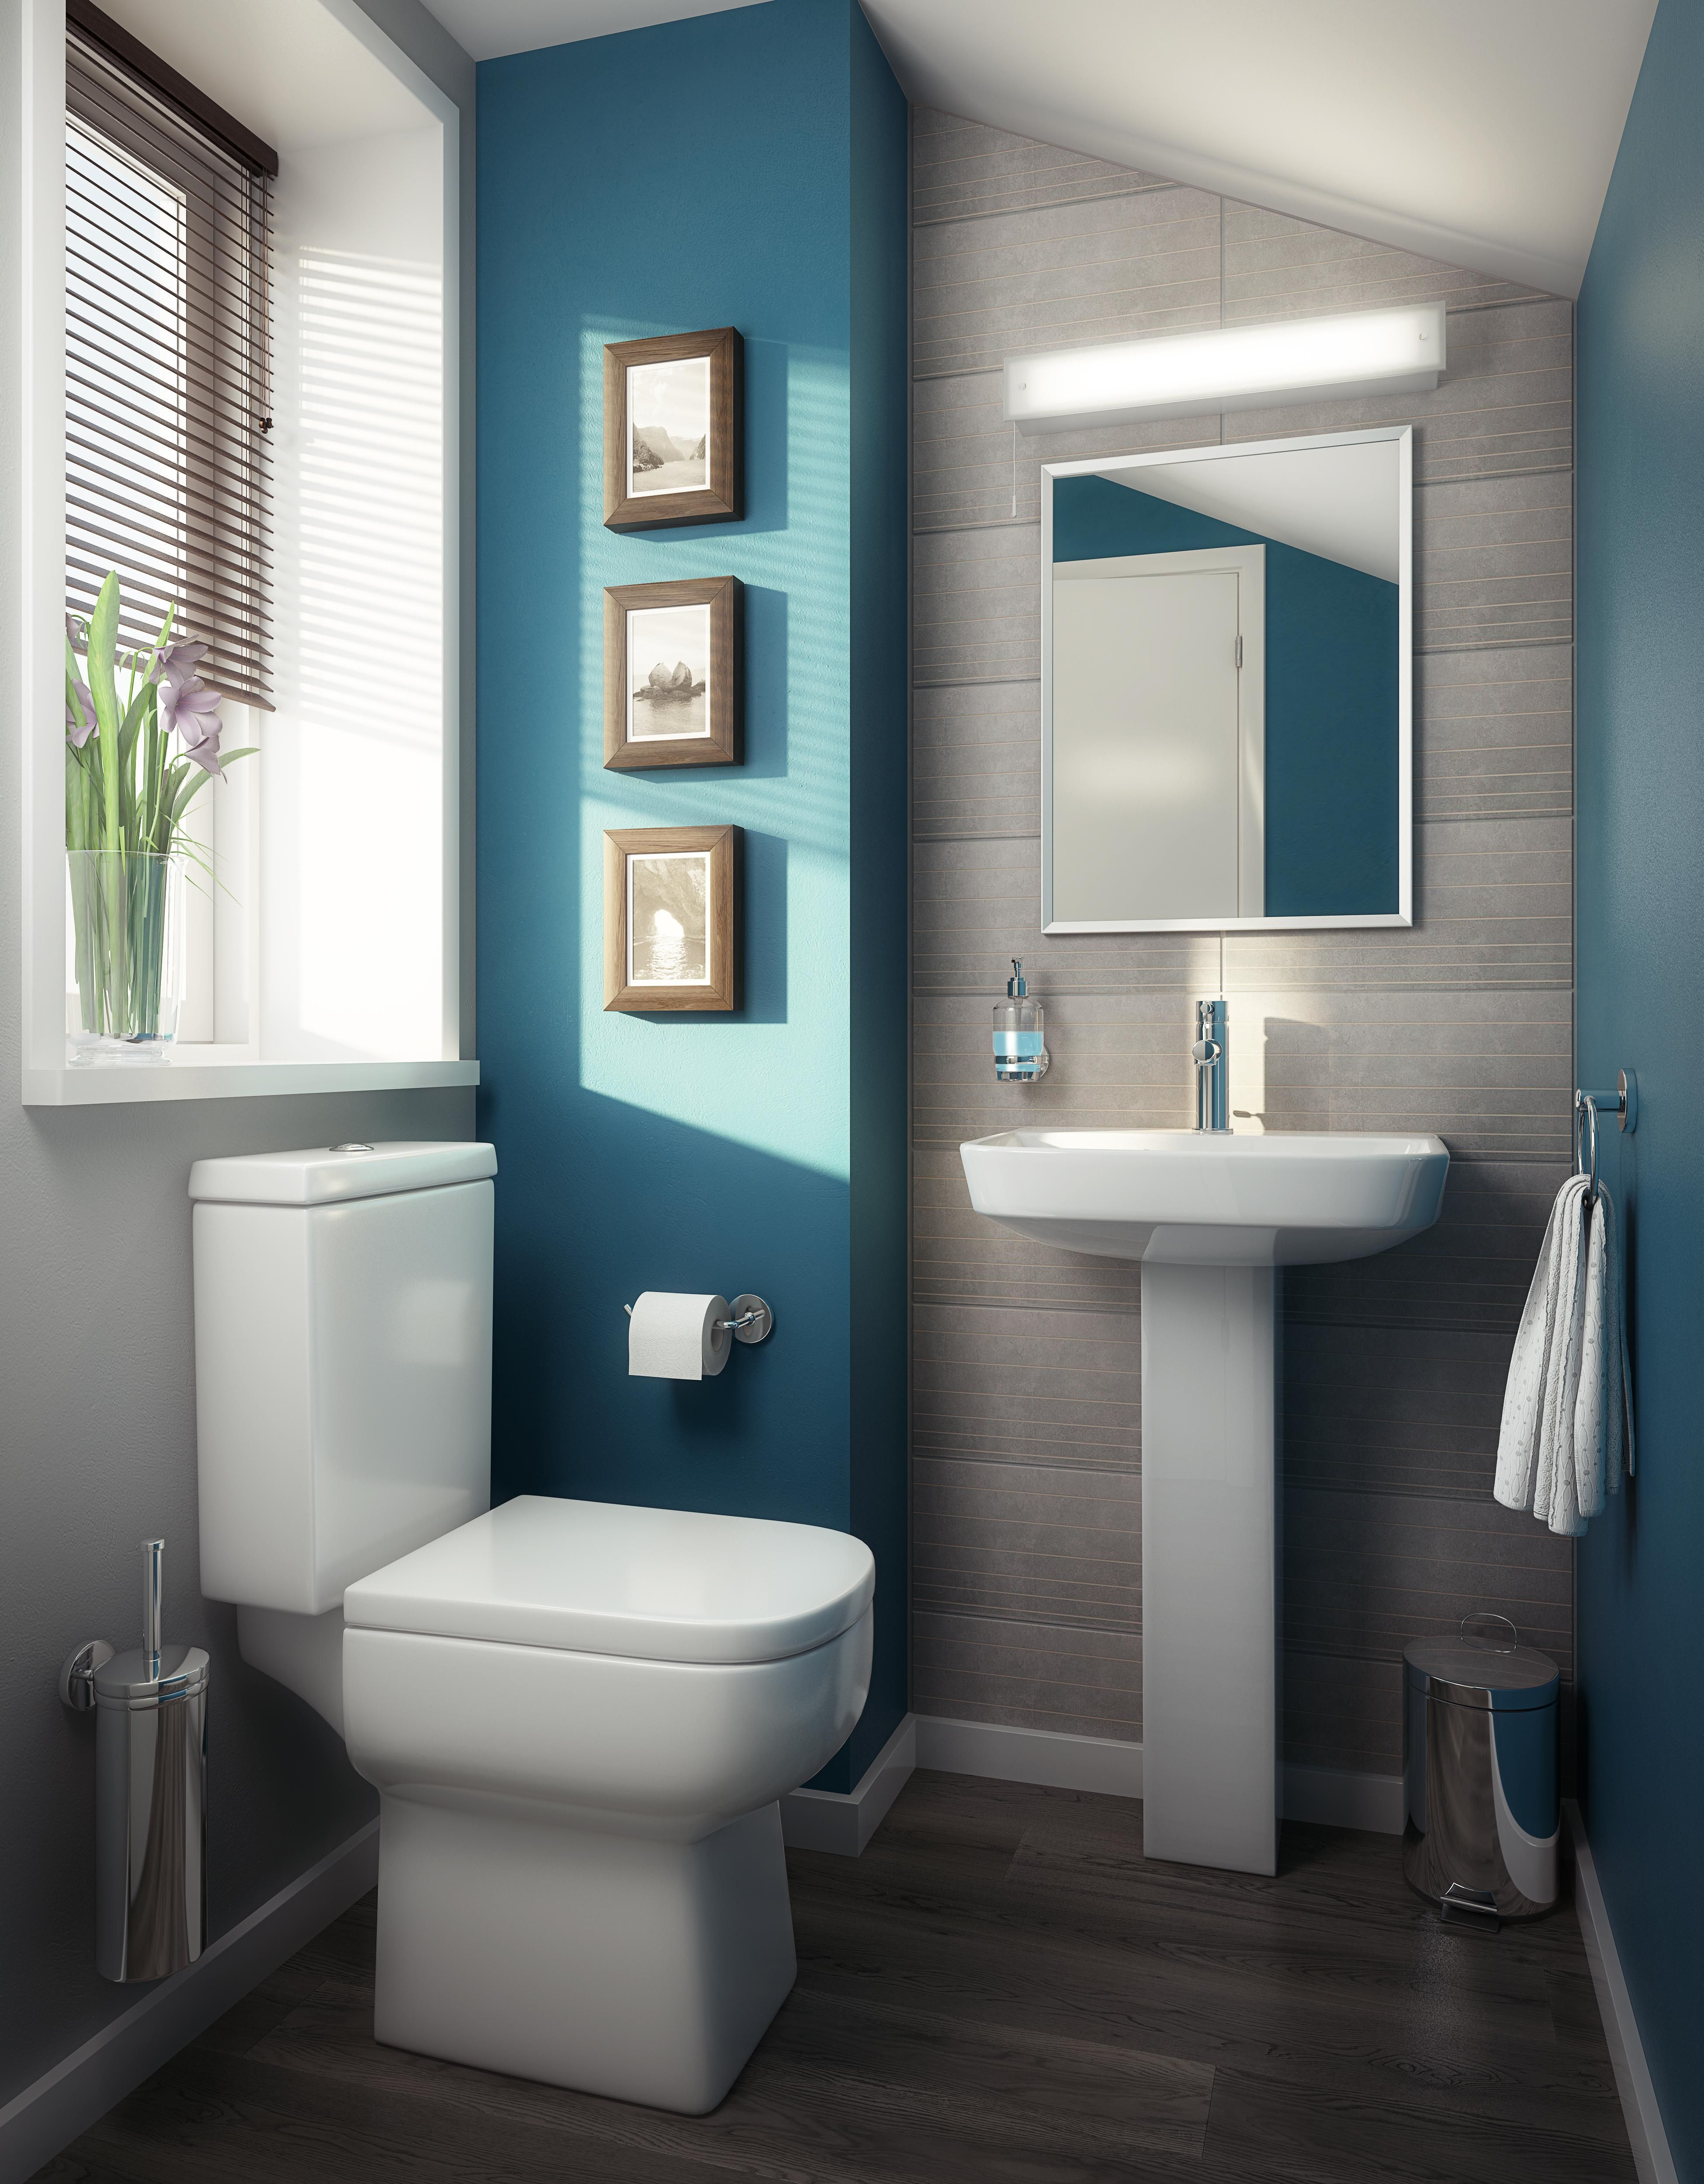 inspiring small bathroom remodel designs ideas on a budget